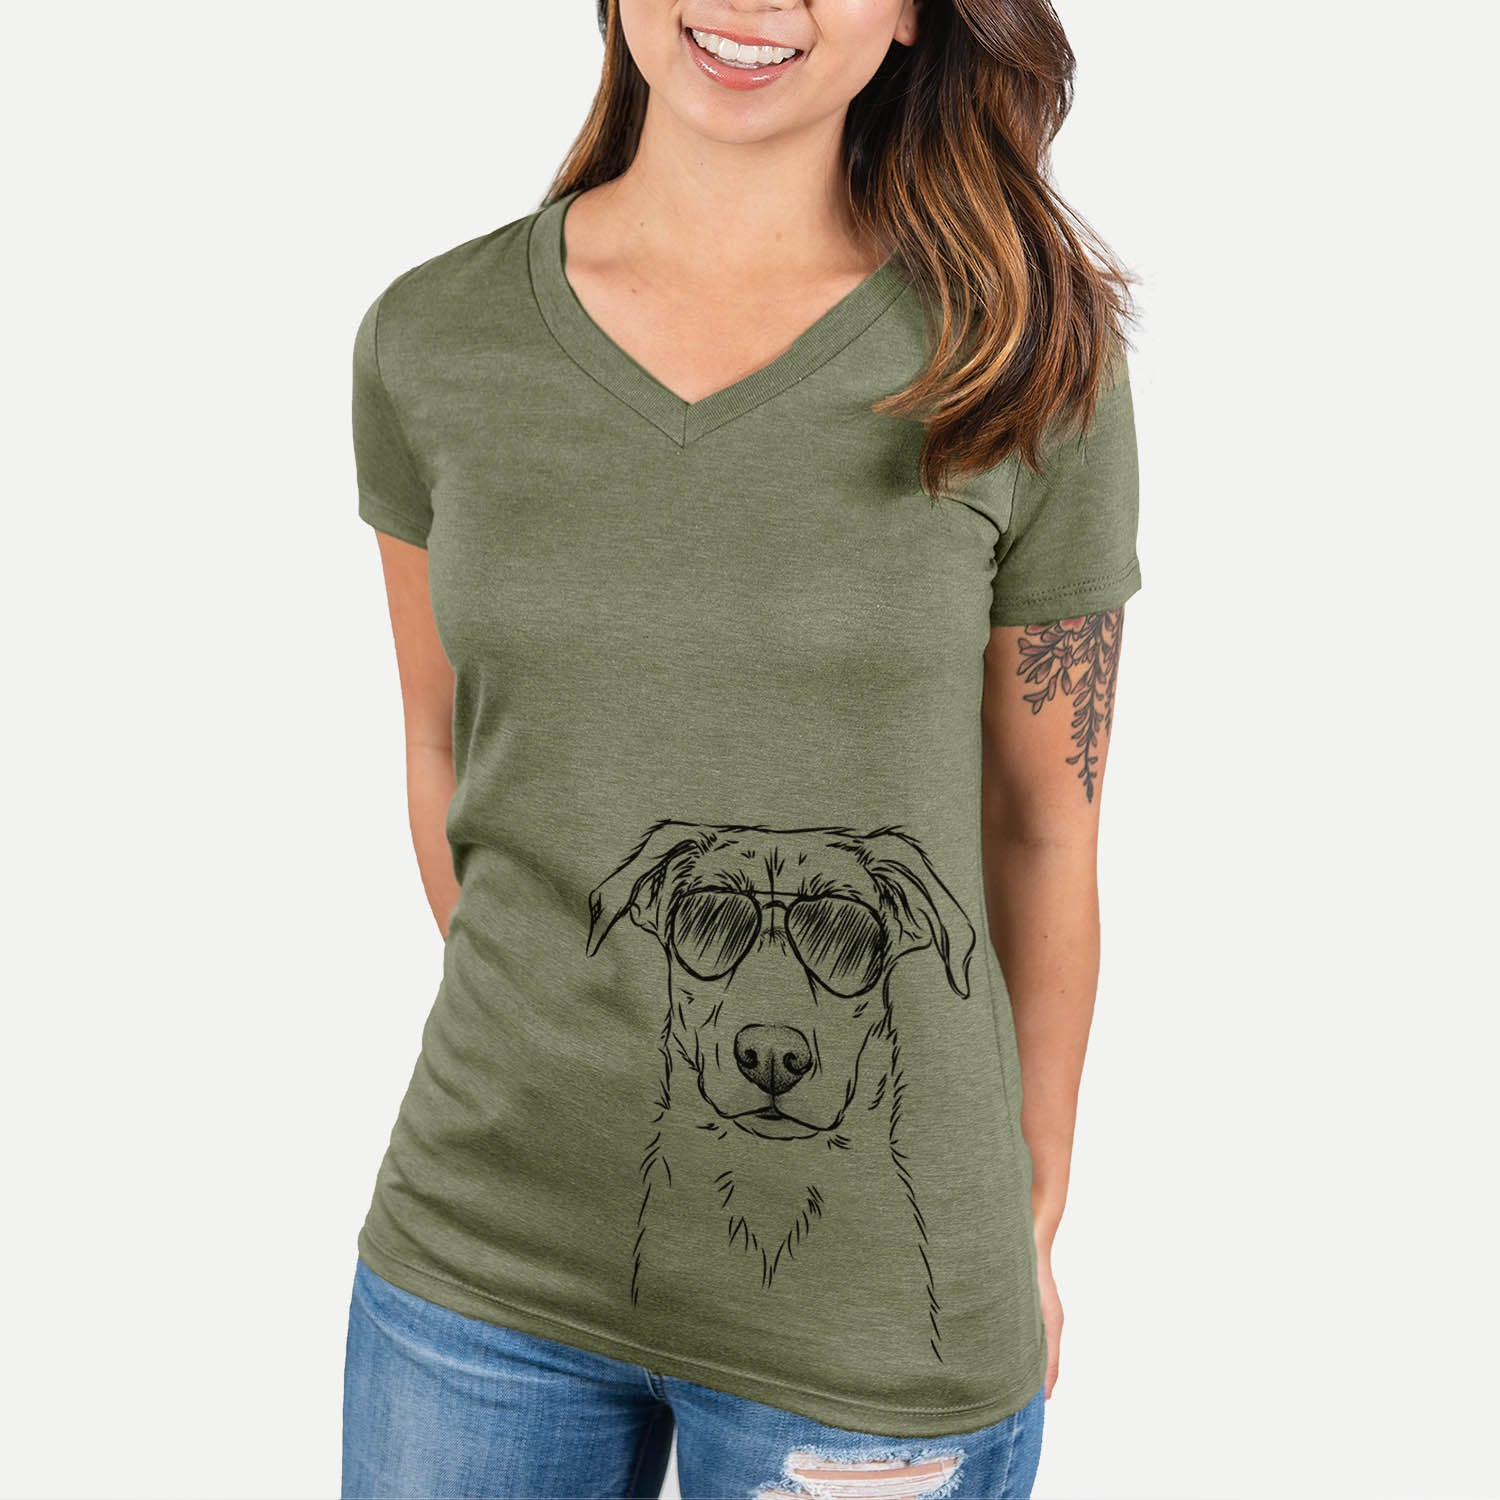 Peanut the Lab Mix - Women's Modern Fit V-neck Shirt